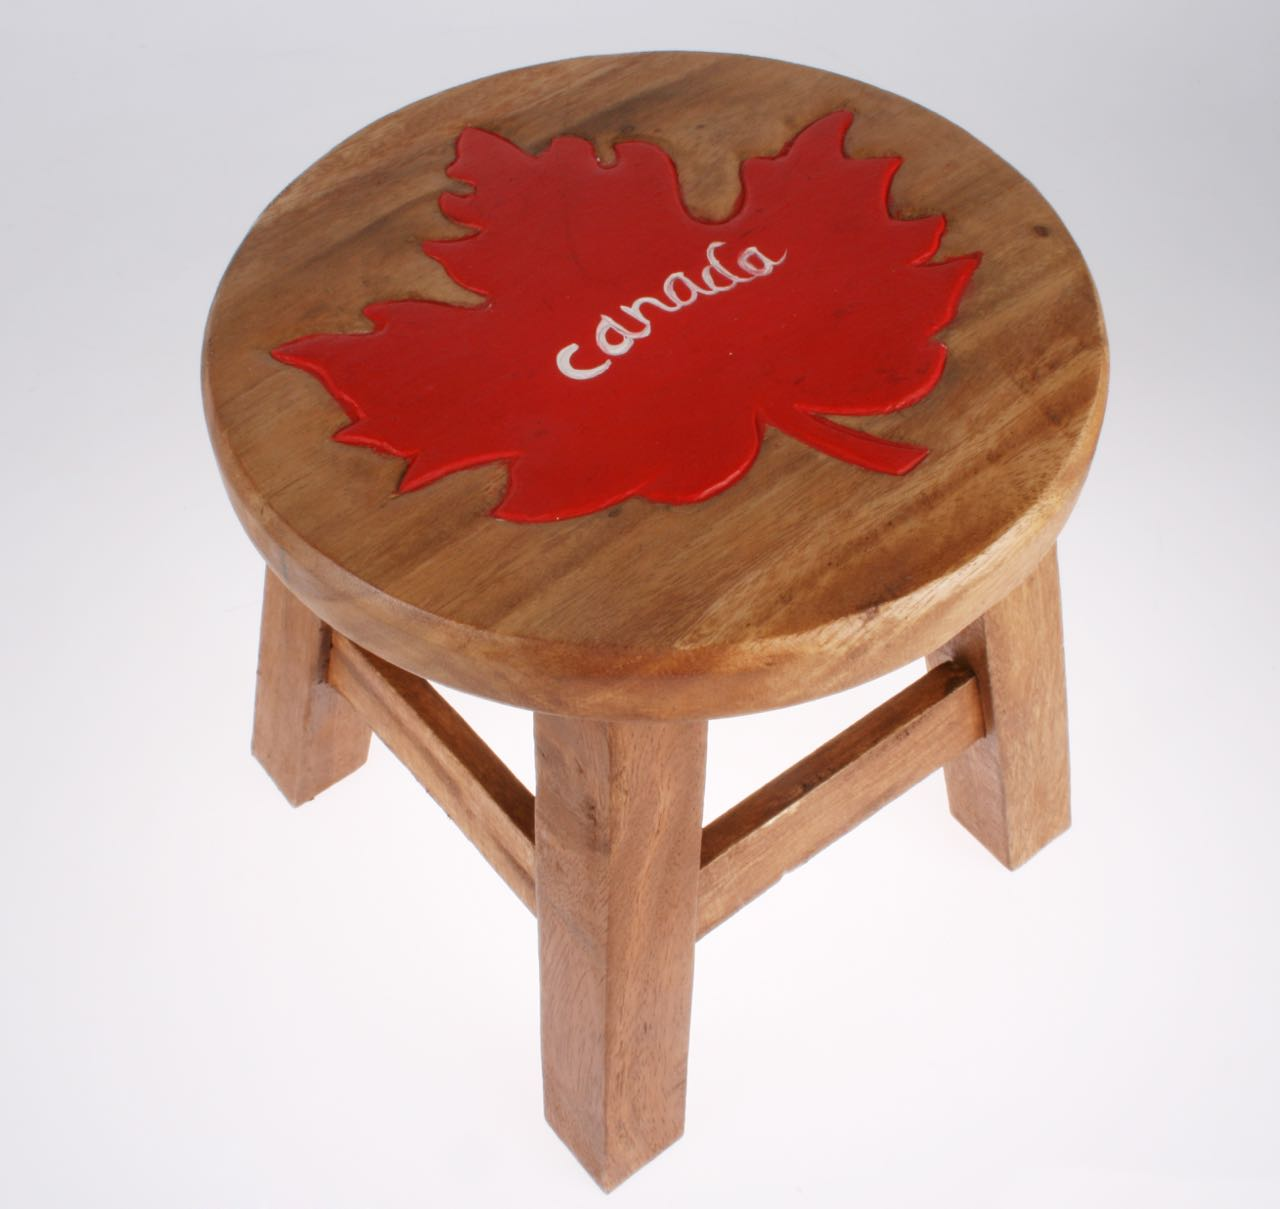 Maple Leaf Stool $35.00